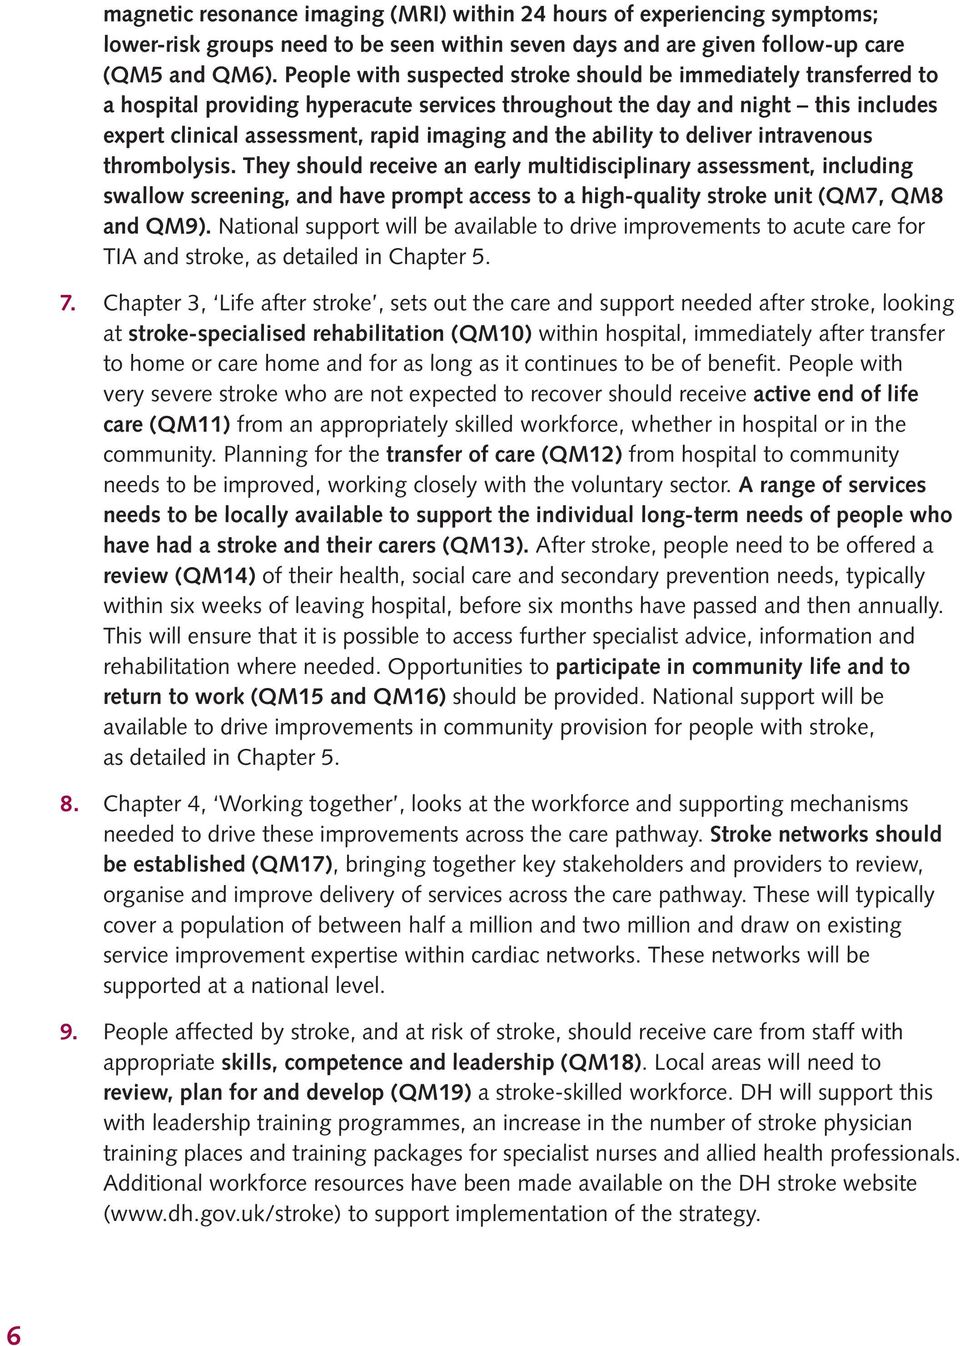 ability to deliver intravenous thrombolysis.